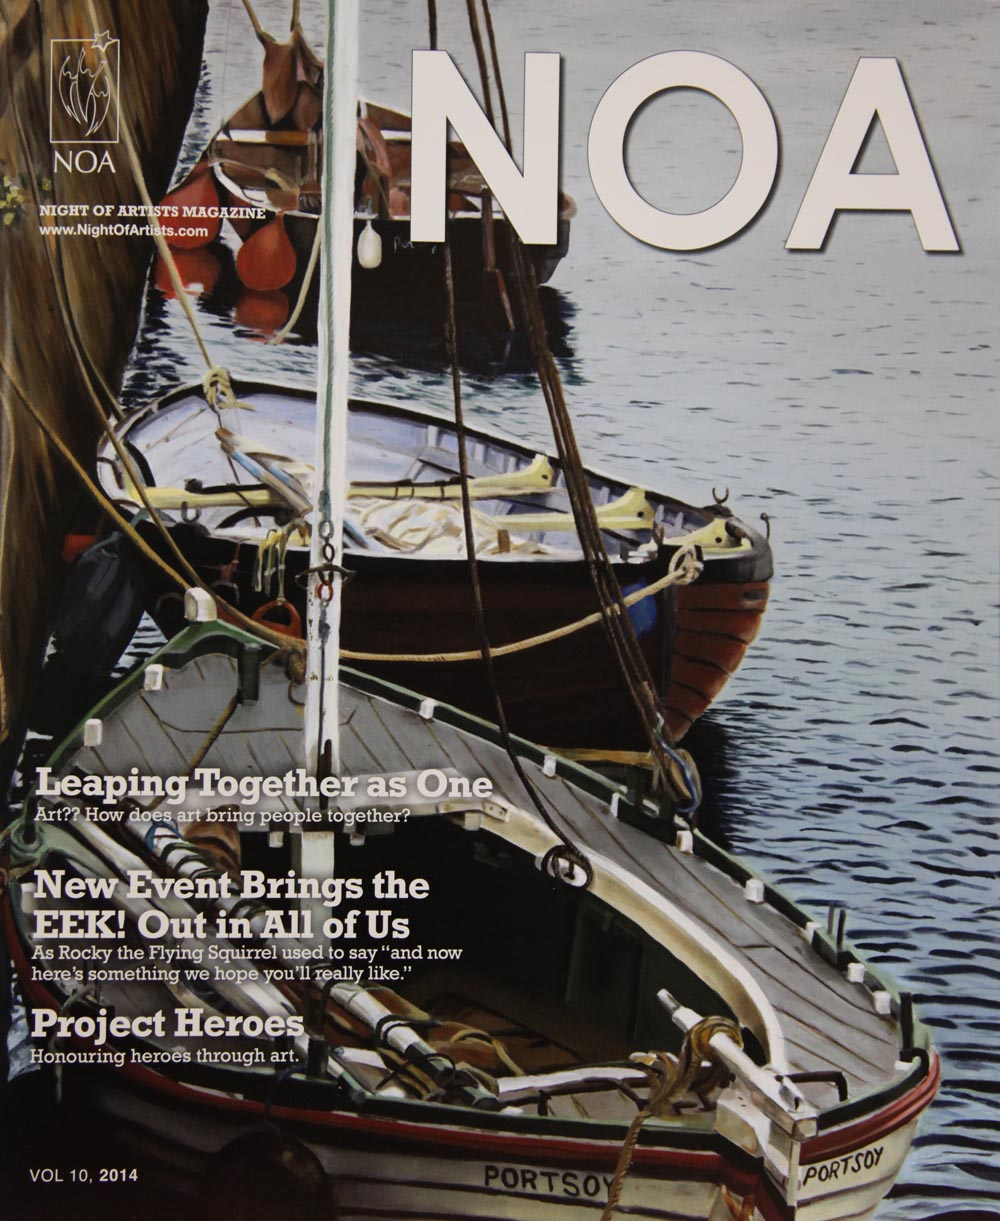 Boats at Portsoy ll wins magazine cover contest!